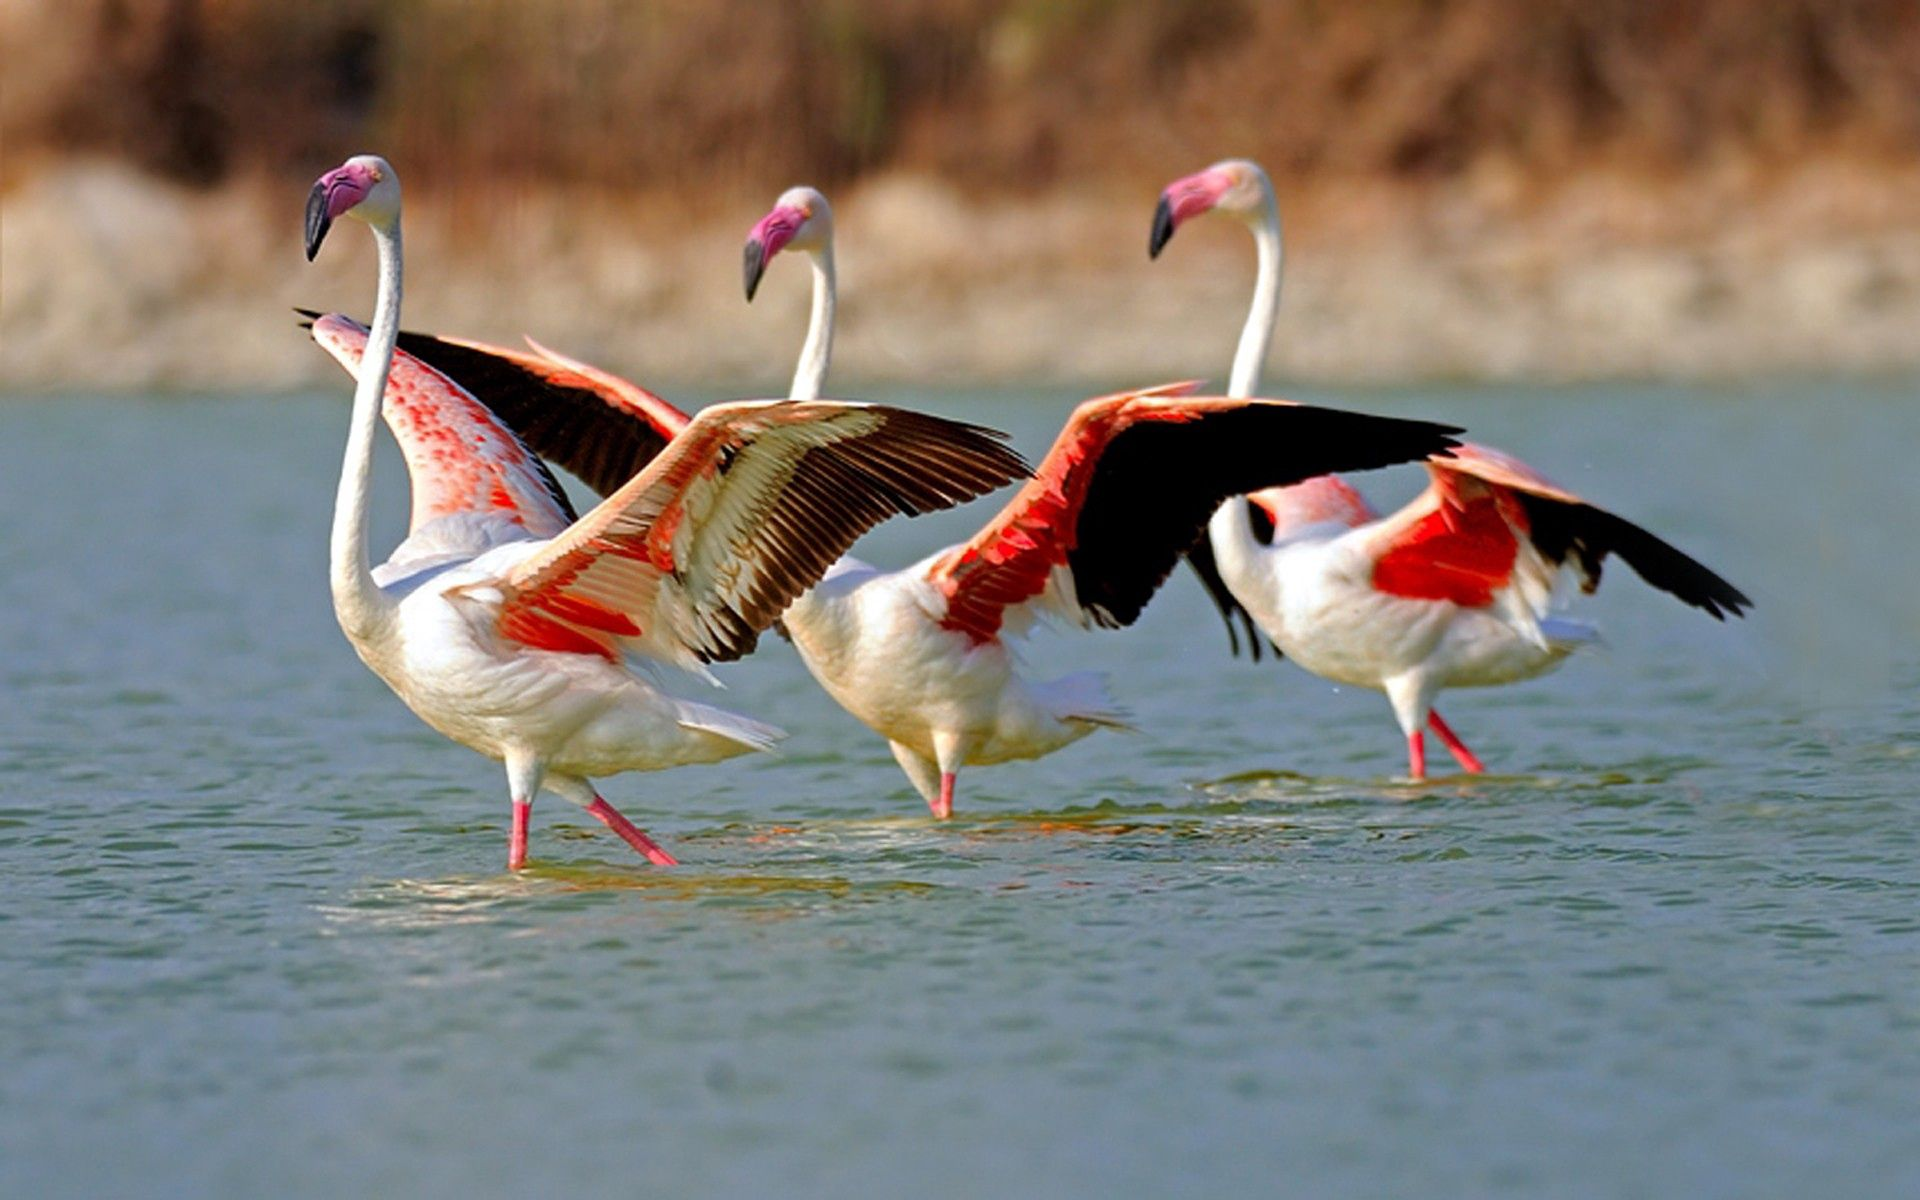 147348 Screensavers and Wallpapers Birds for phone. Download Animals, Flamingo, Lake, Water, Large, Big, Stroll, Birds pictures for free